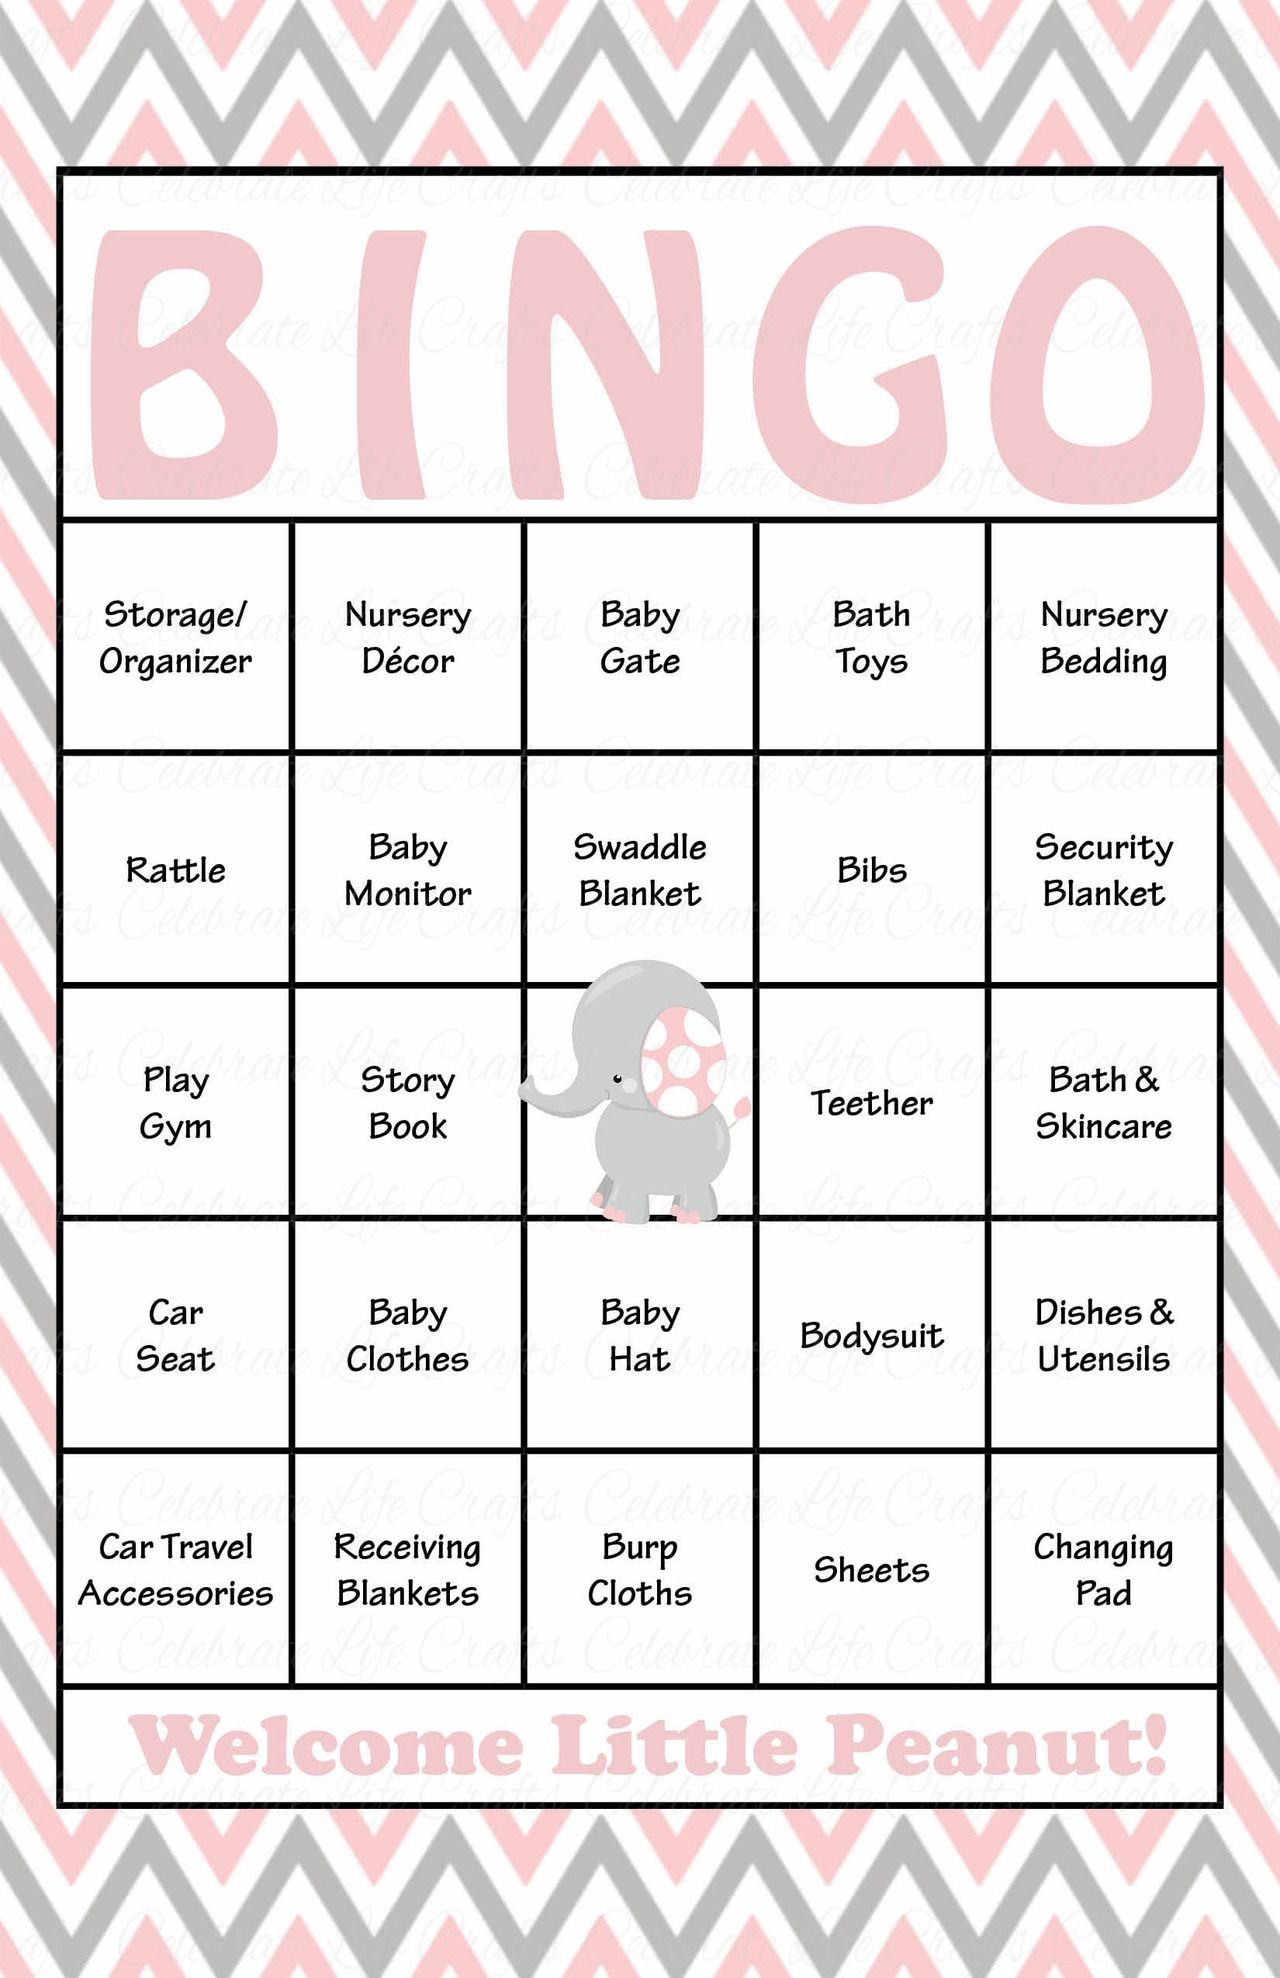 Elephant Baby Shower - Baby Bingo Cards - Printable Download